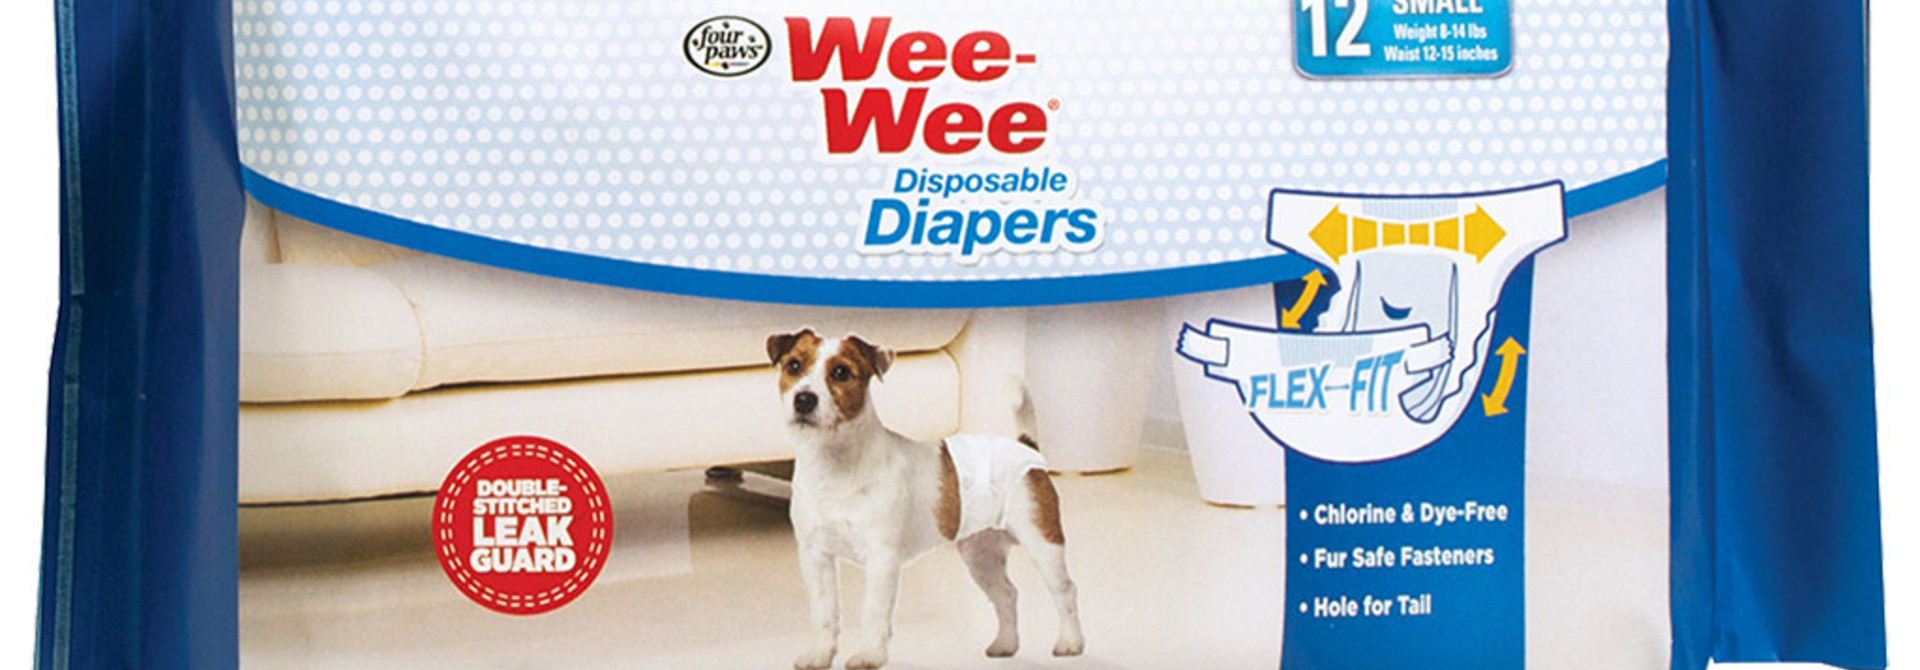 Wee-Wee Disposable Diapers Small 12PK